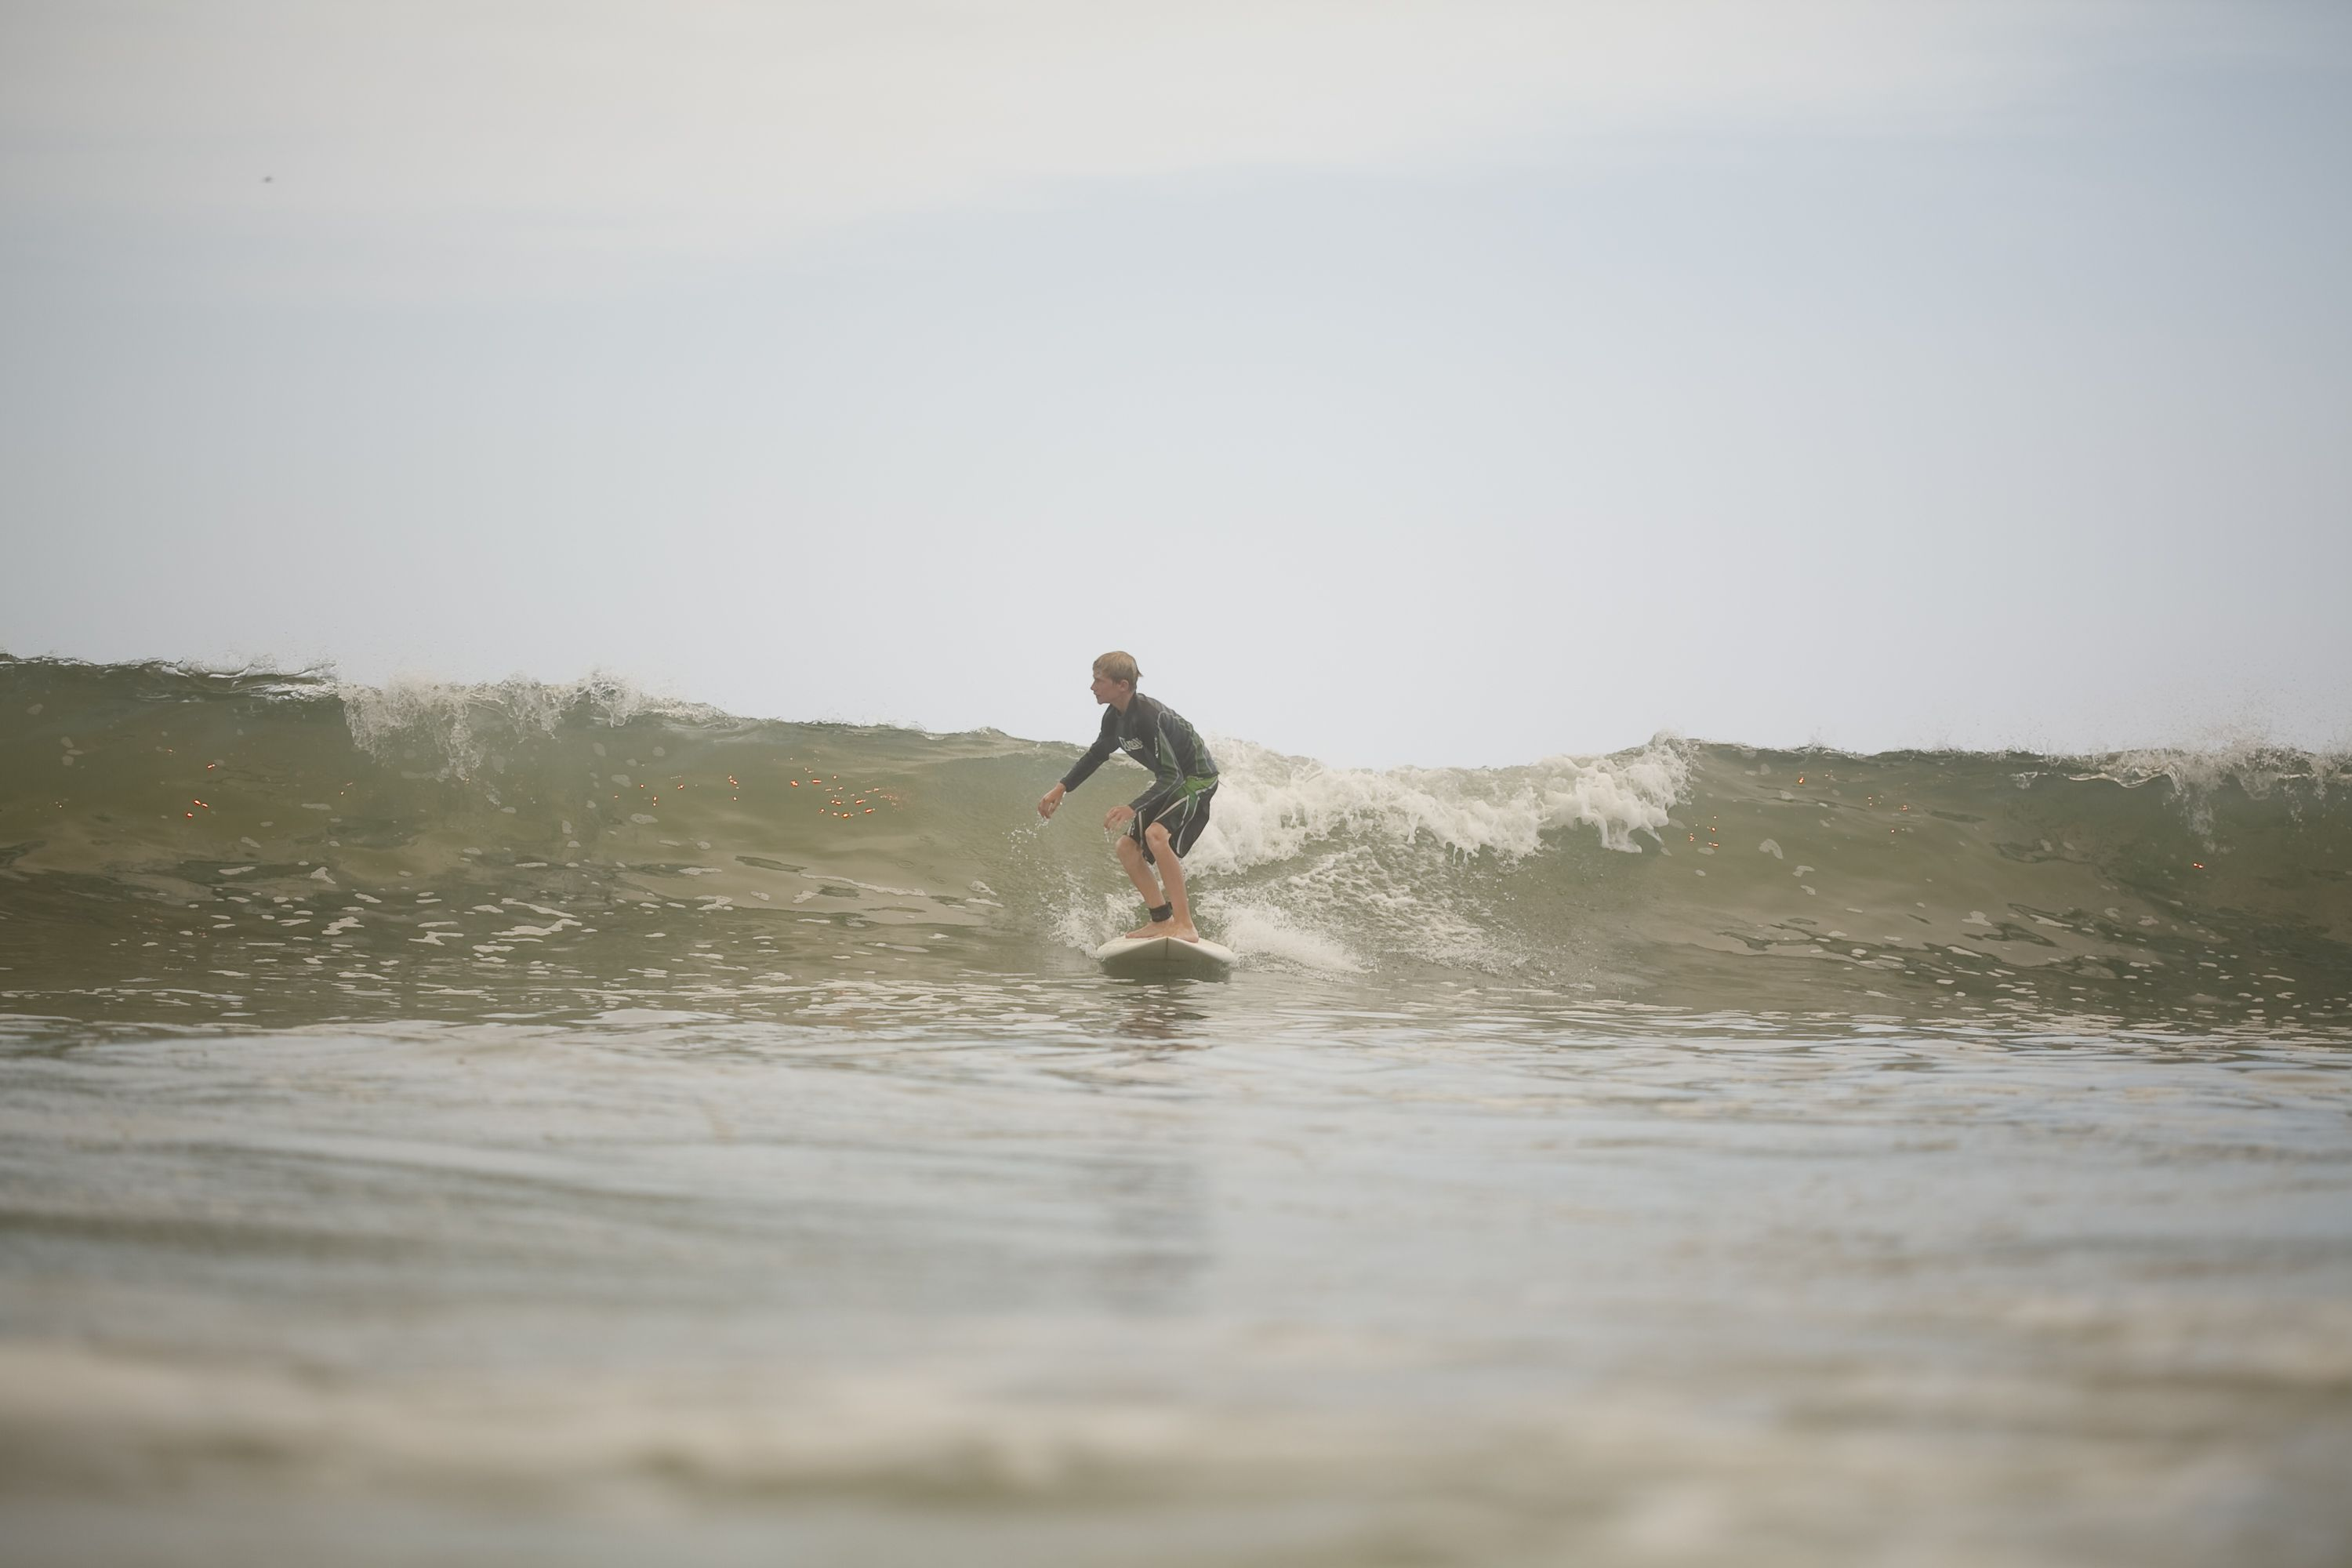 Liam - Shredding on his own thanks to CSS surf lessons